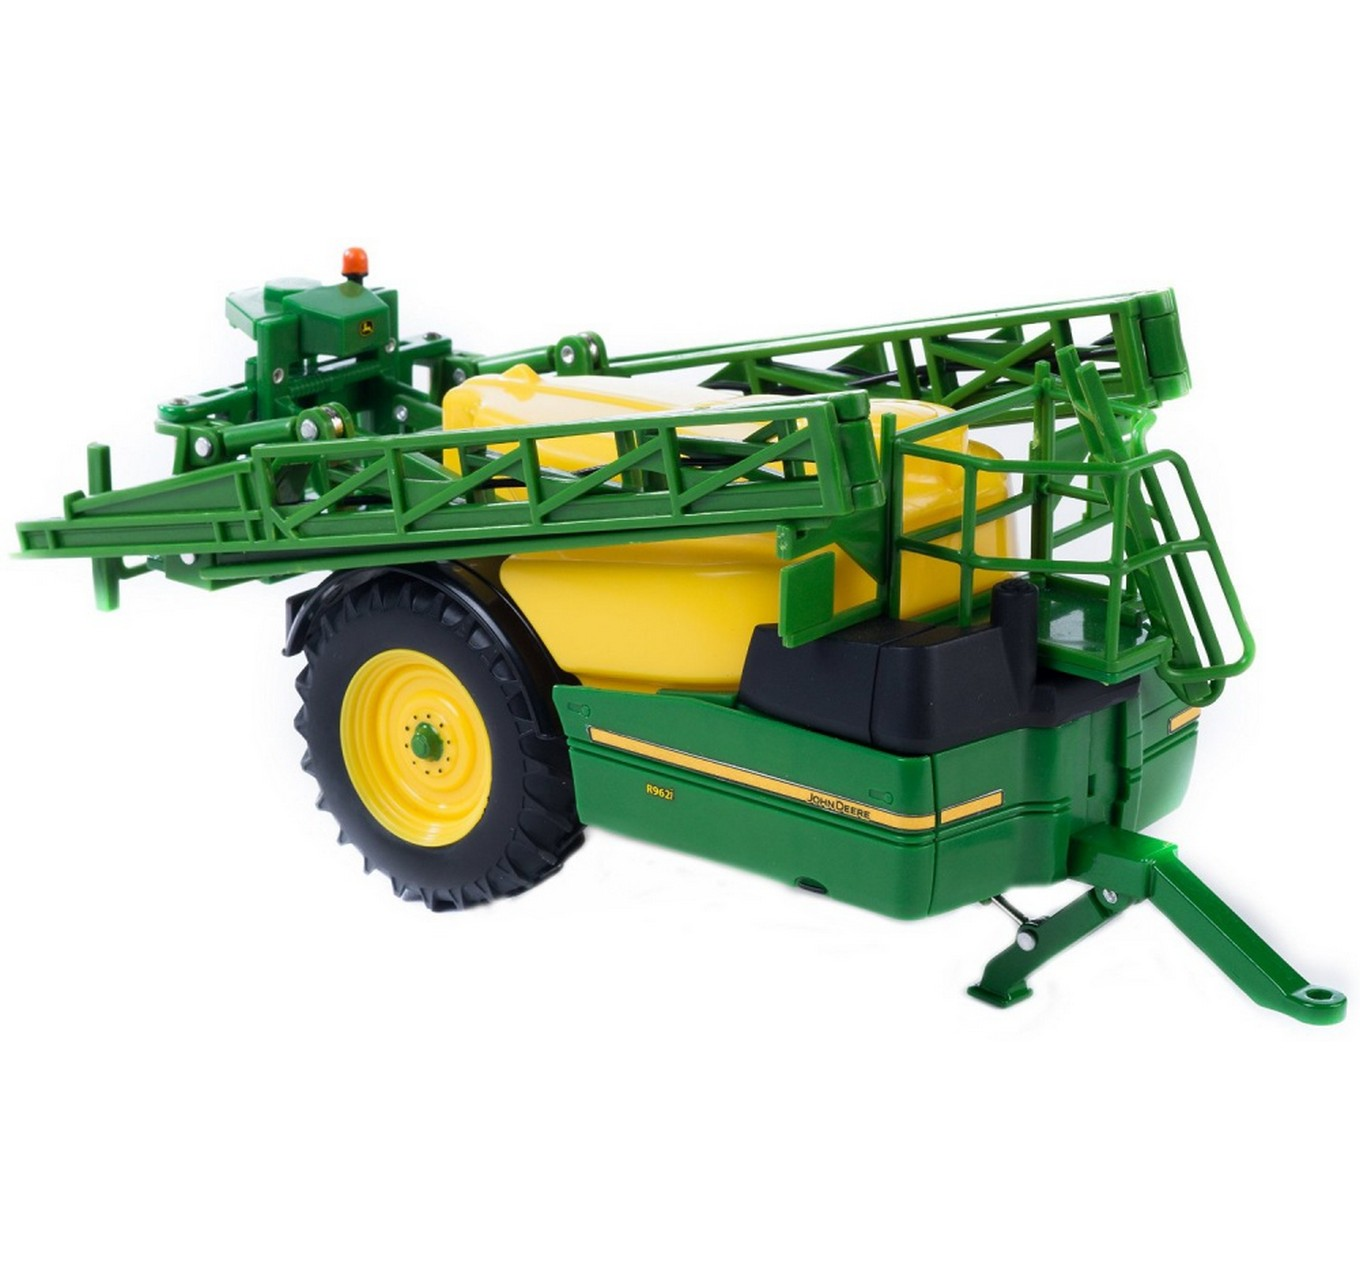 John Deere R962i Sprayer